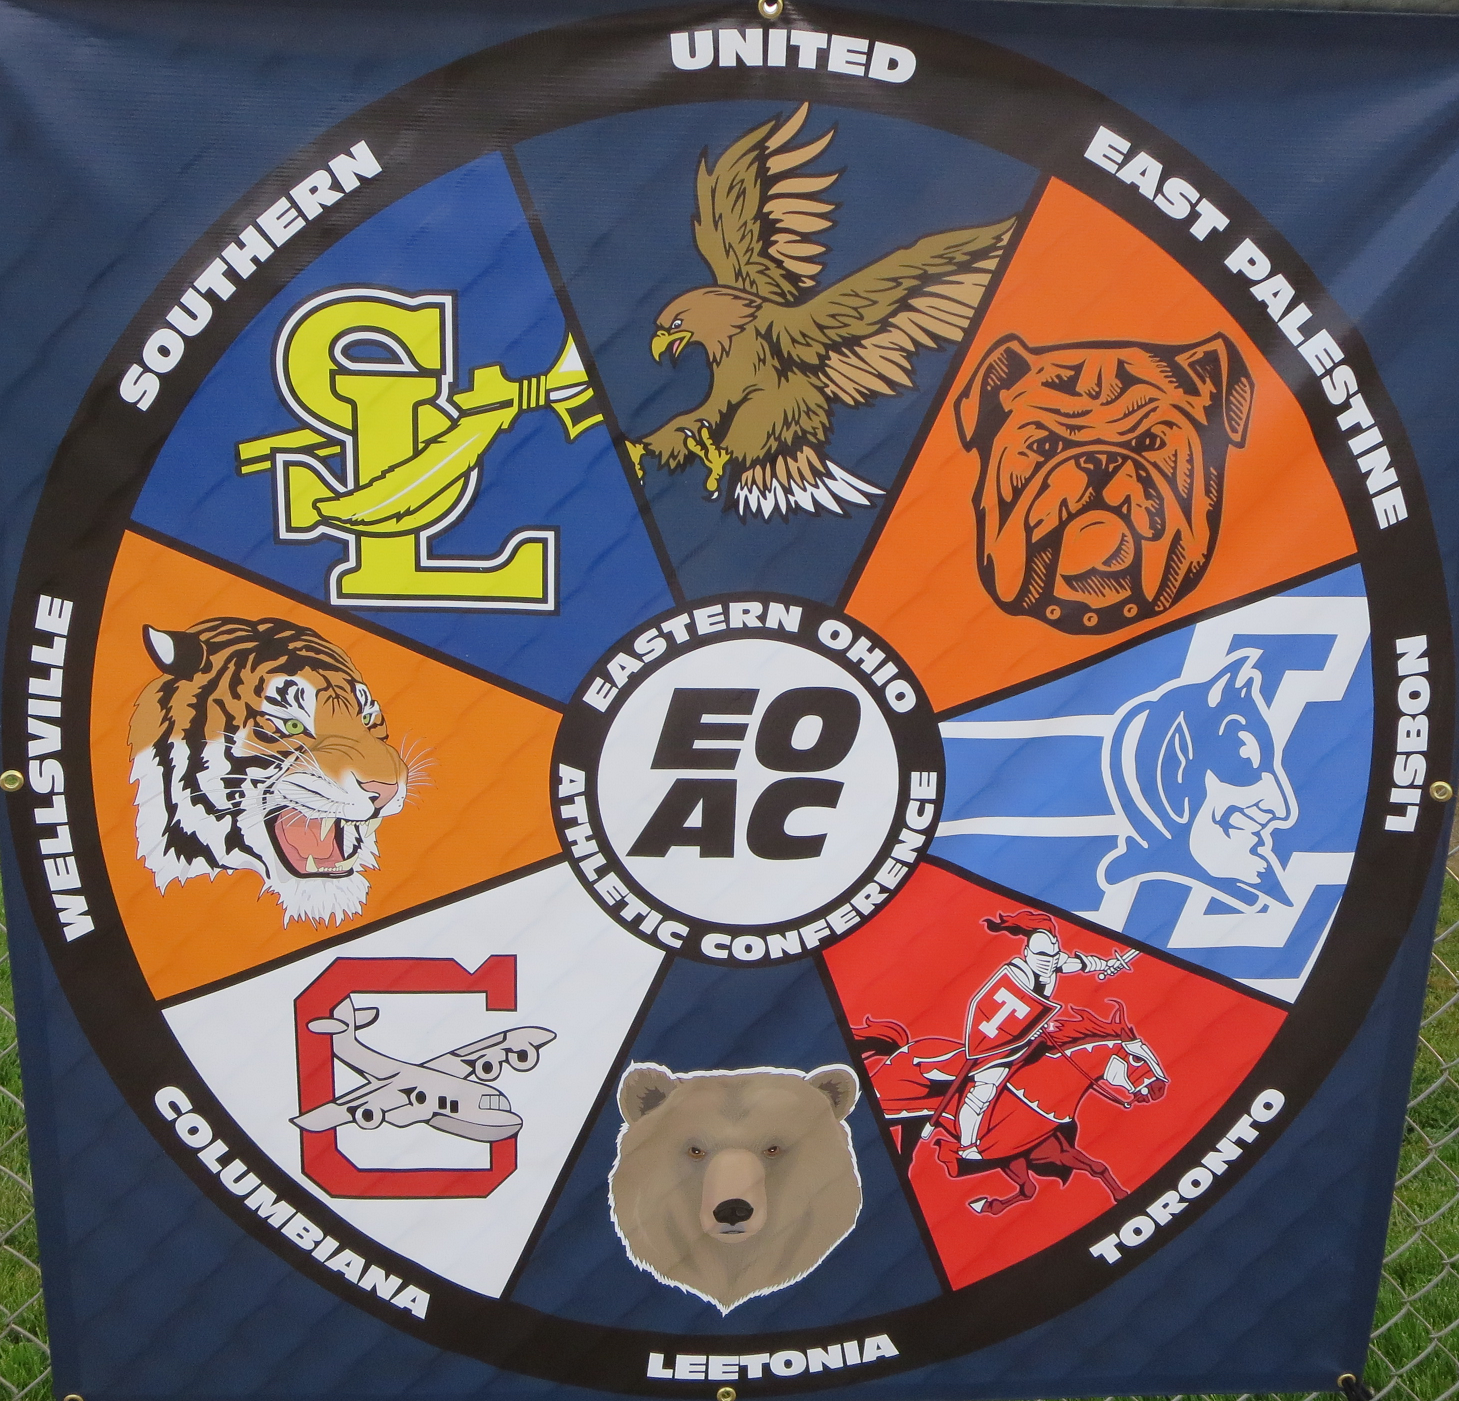 EOAC_Banner-_1527815339547.png